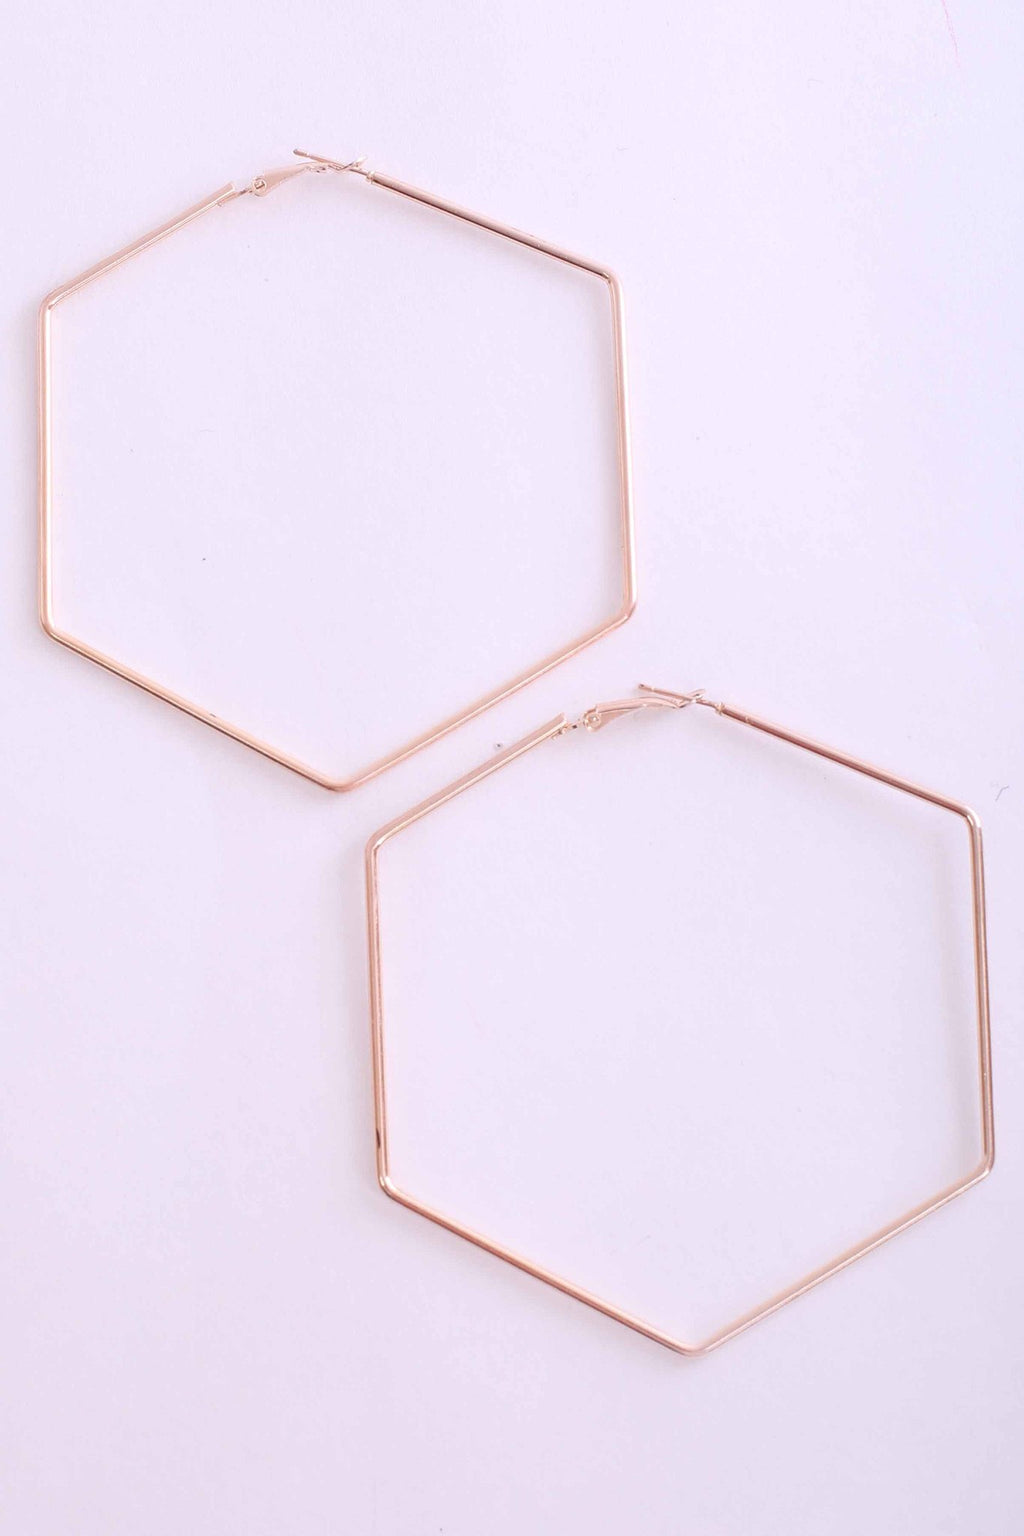 Hexagonal Earrings in Gold 1